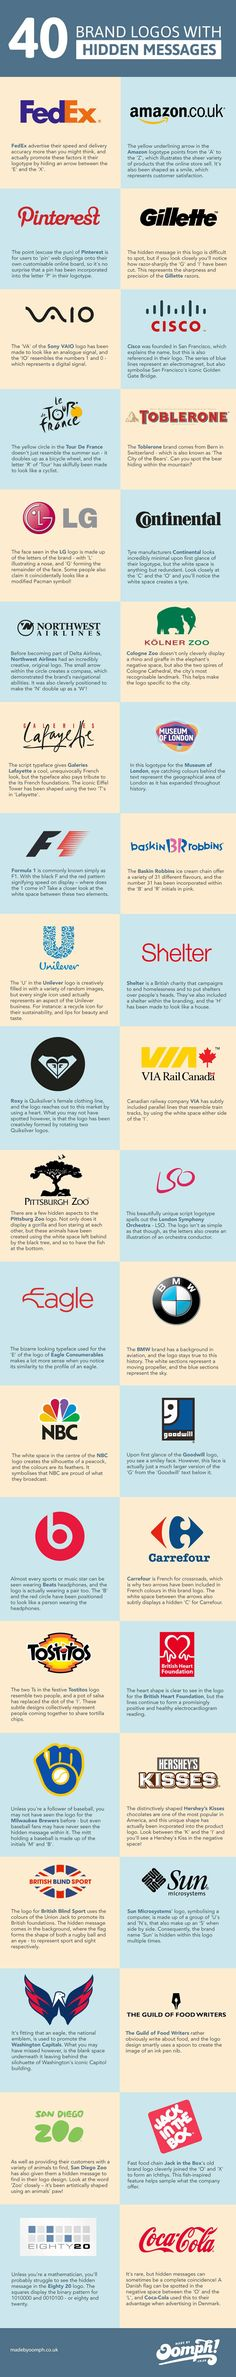 40 Logos With Hidden Messages and good uses of Negative Space. This infographic is a great resource for inspiration of creative logos with hidden messages Web Design, Logo Design, Branding Design, Logo Intelligent, Cv Web, Lettering, Typography, Clever Logo, Creative Logo